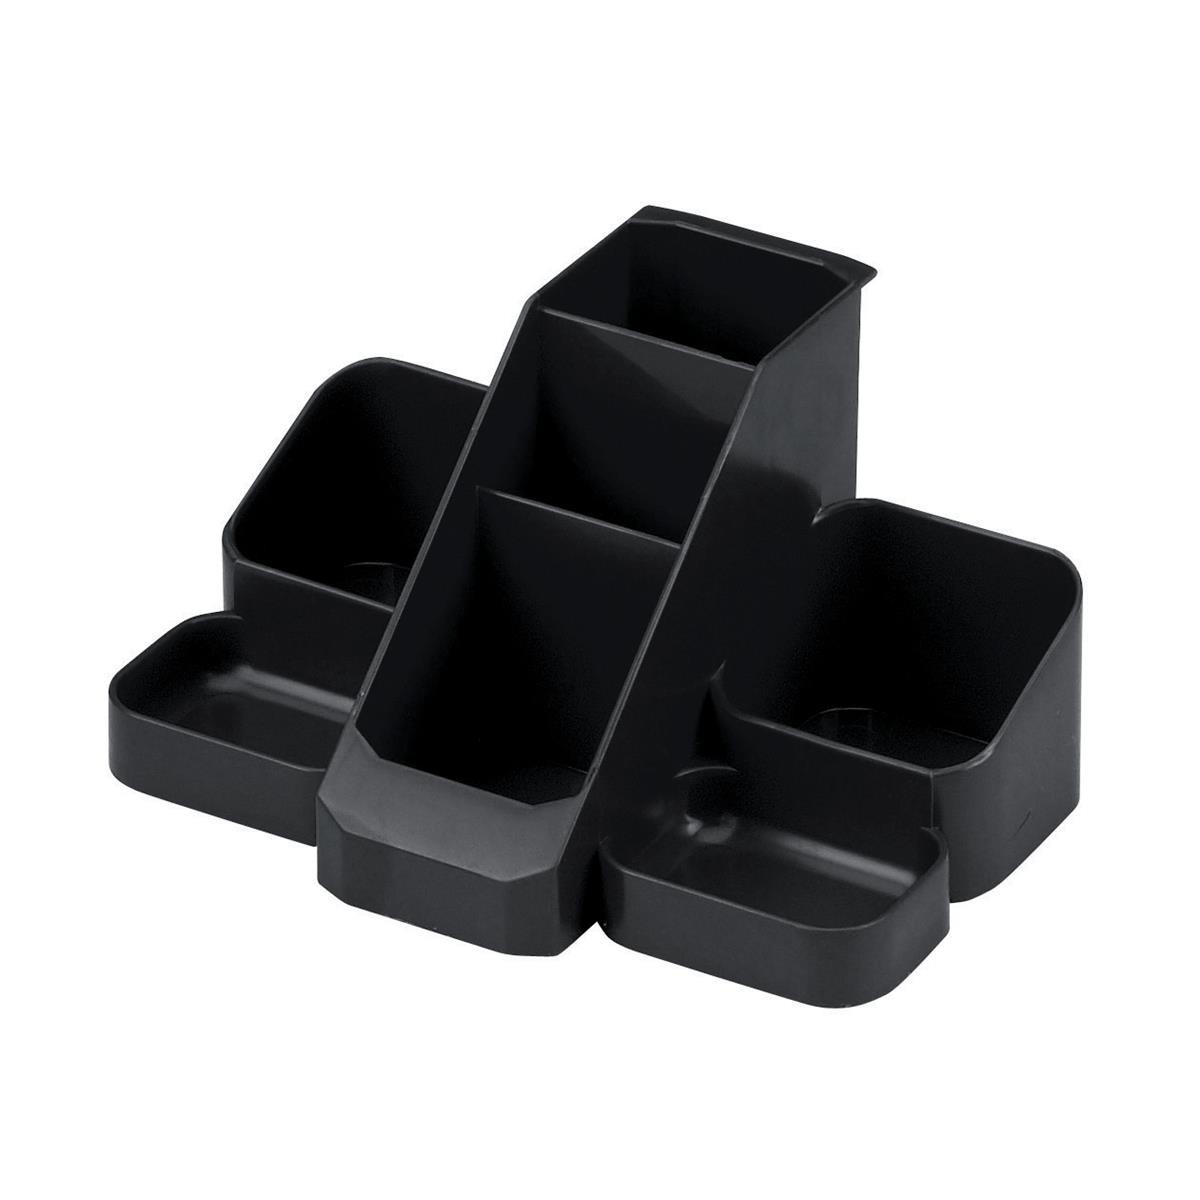 Desktop trays or organizers Avery Basics Desk Tidy 7 Compartments Black Ref 1137BLK